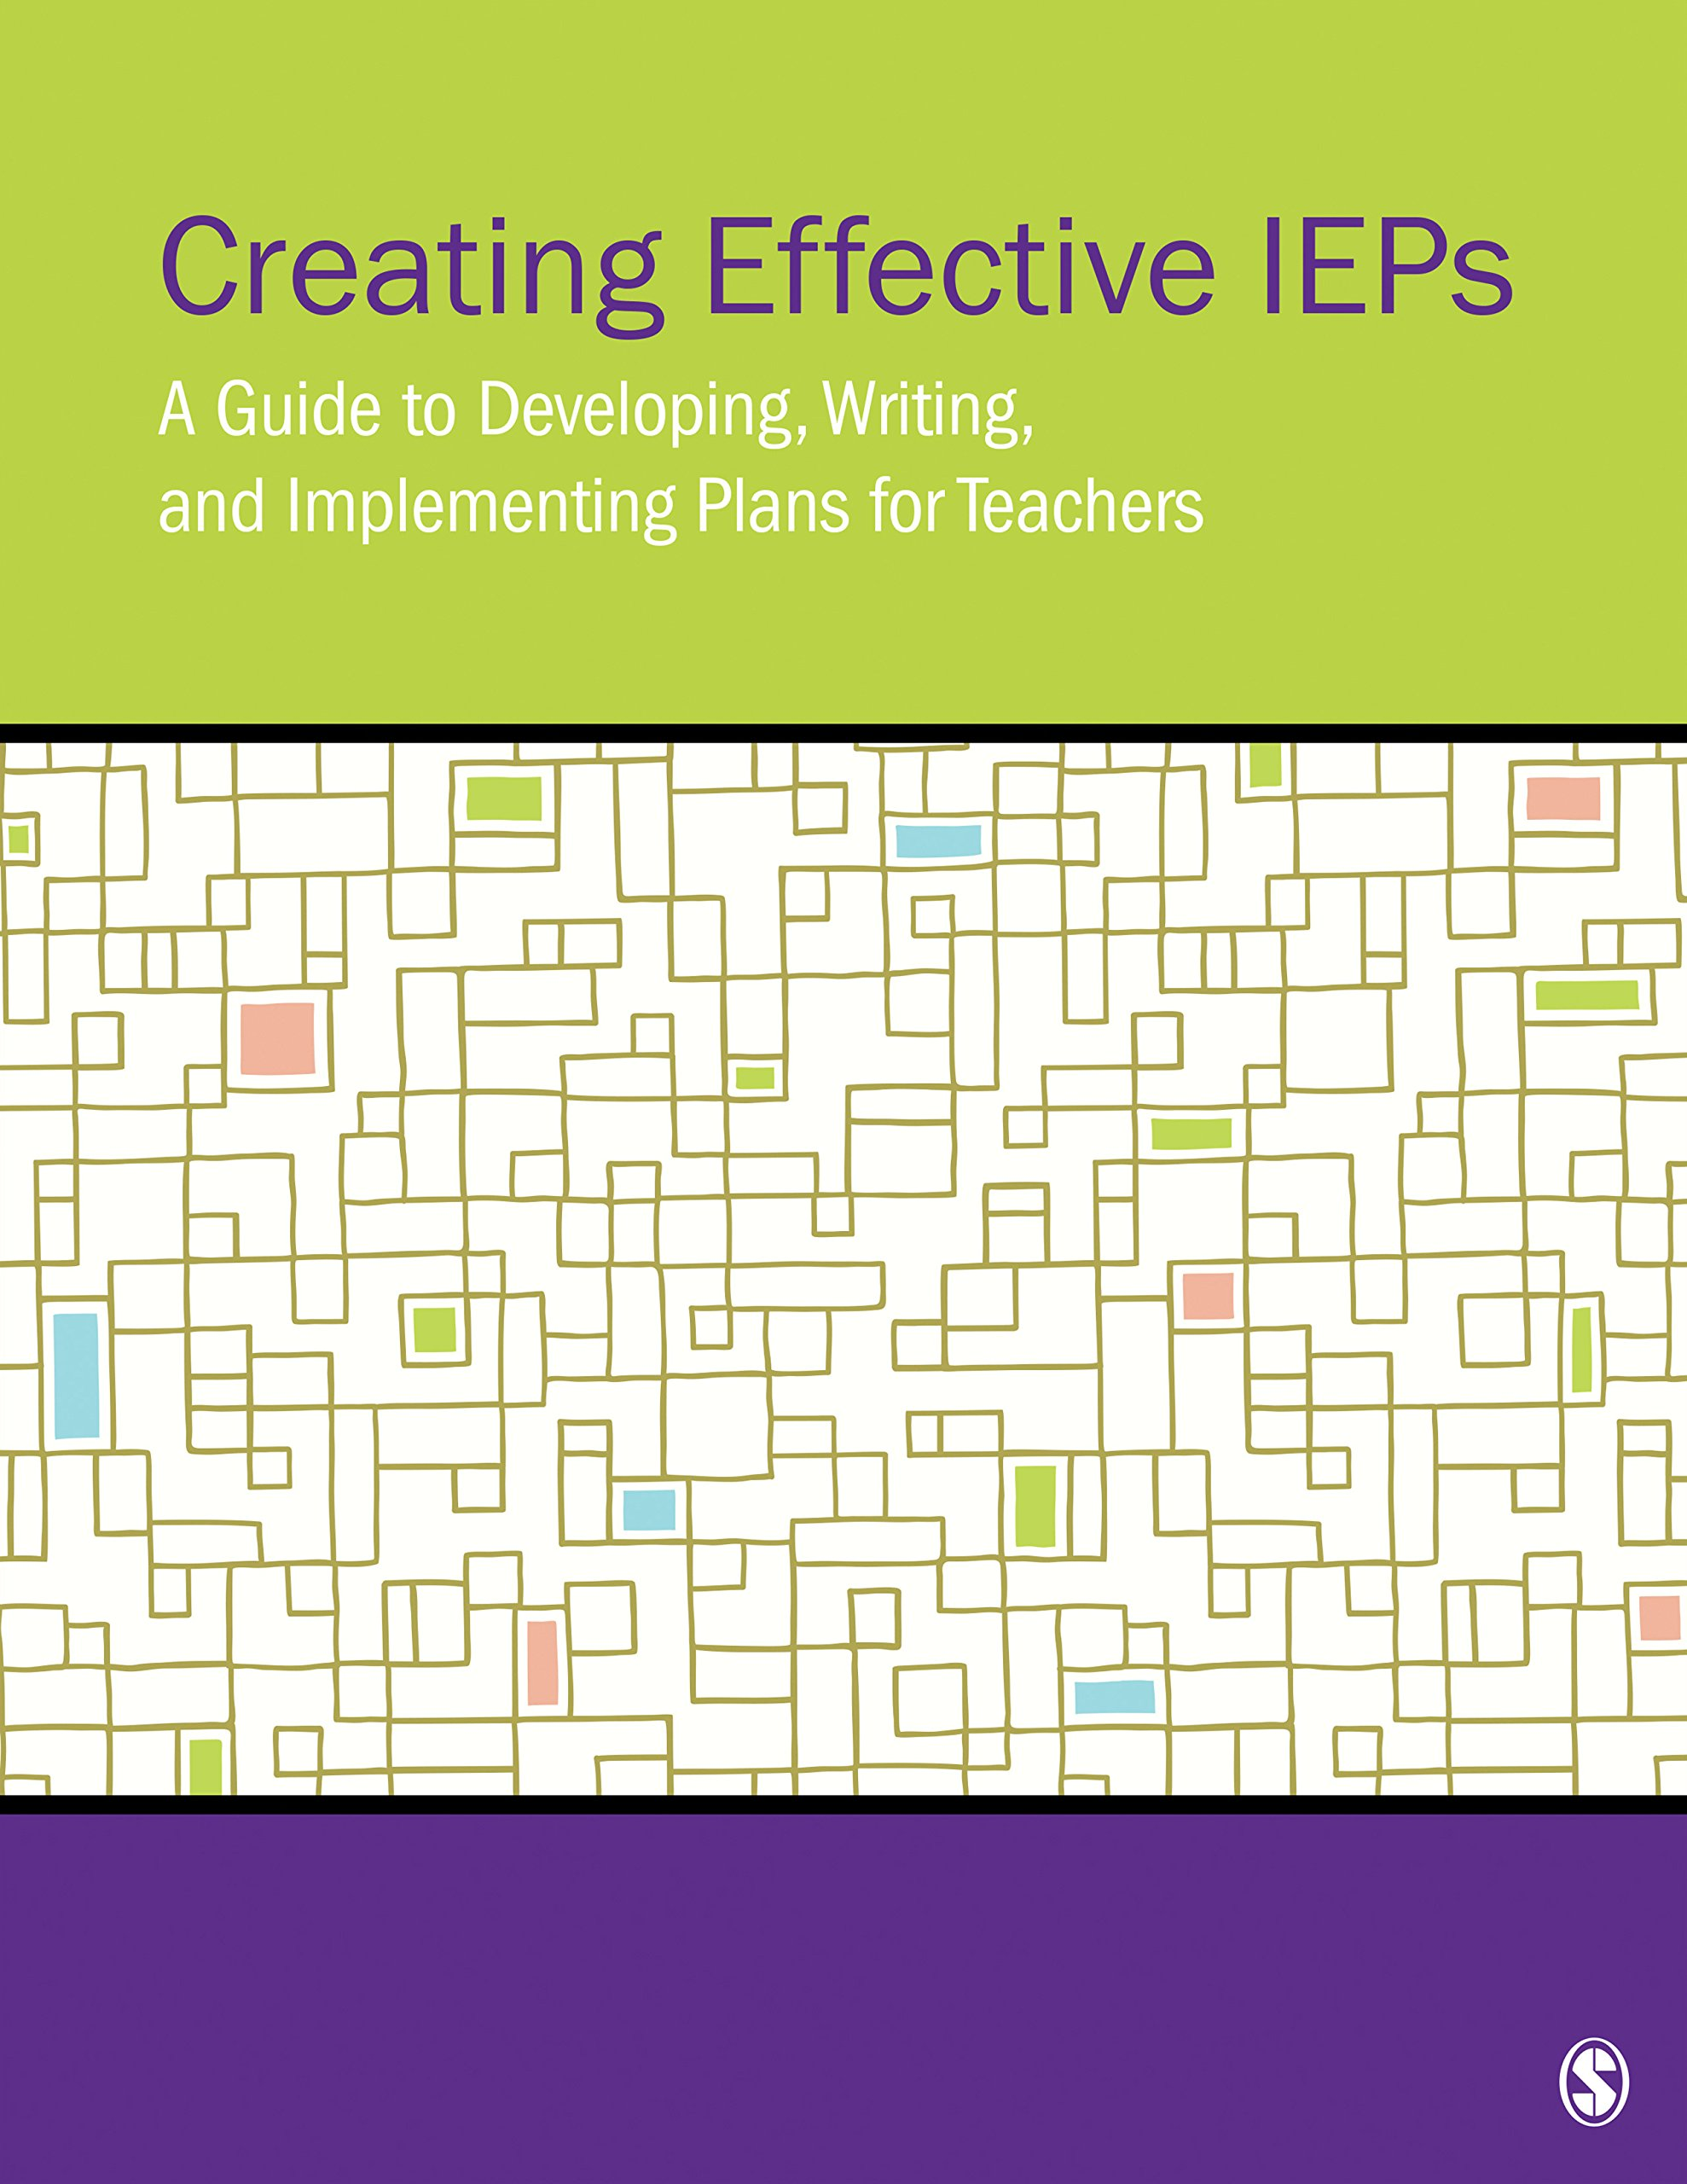 Creating Effective IEPs: A Guide to Developing, Writing, and Implementing Plans for Teachers